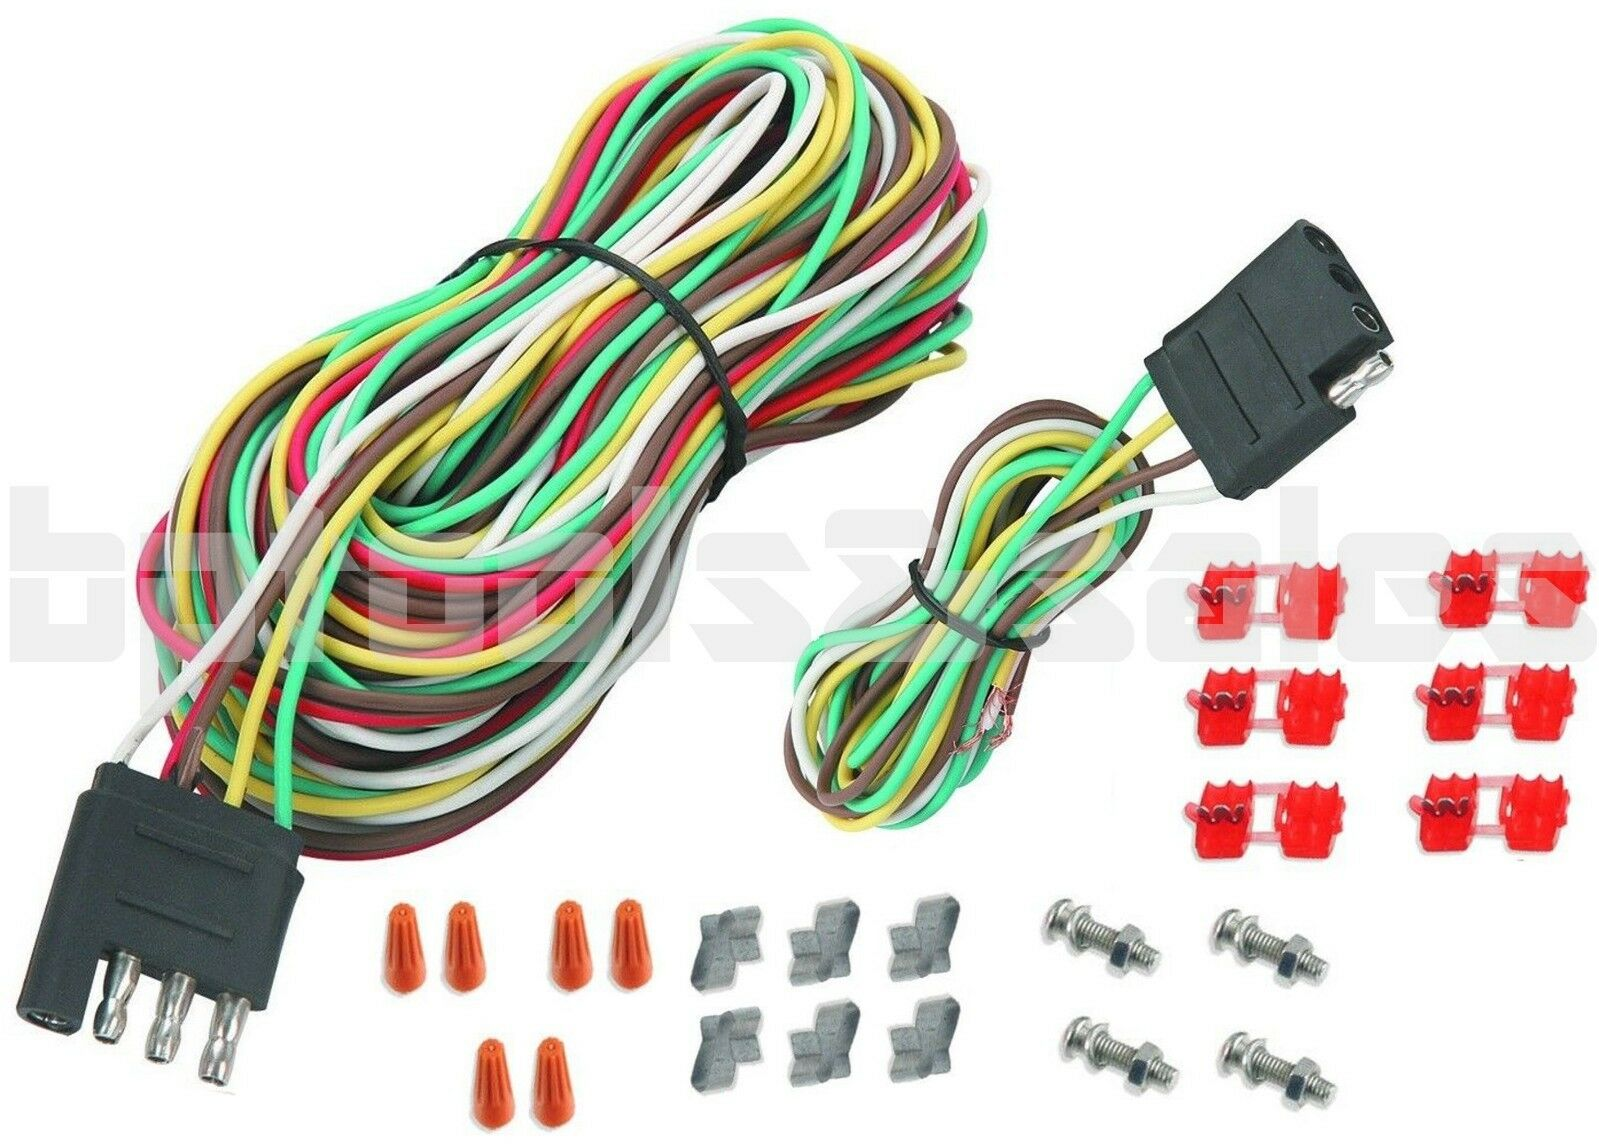 25ft 4 Way Trailer Wiring Connection Kit Flat Wire Extension Harness How To A Car Boat Rv 1 Of 1free Shipping